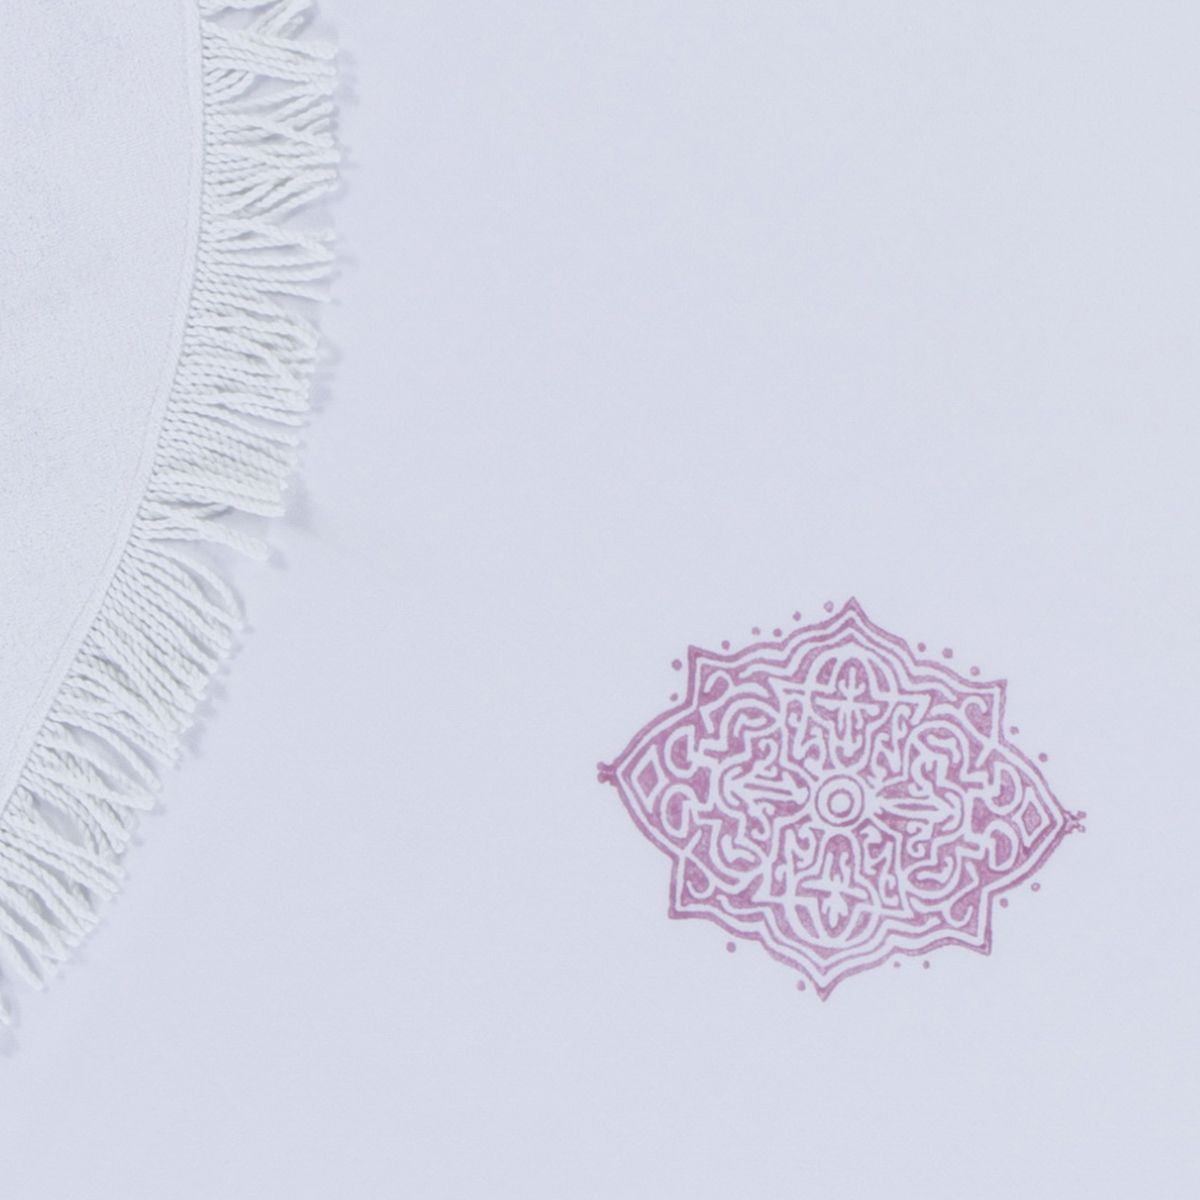 Round Towel / Cloth - White / Hand Printed 02 - Dusty Rose